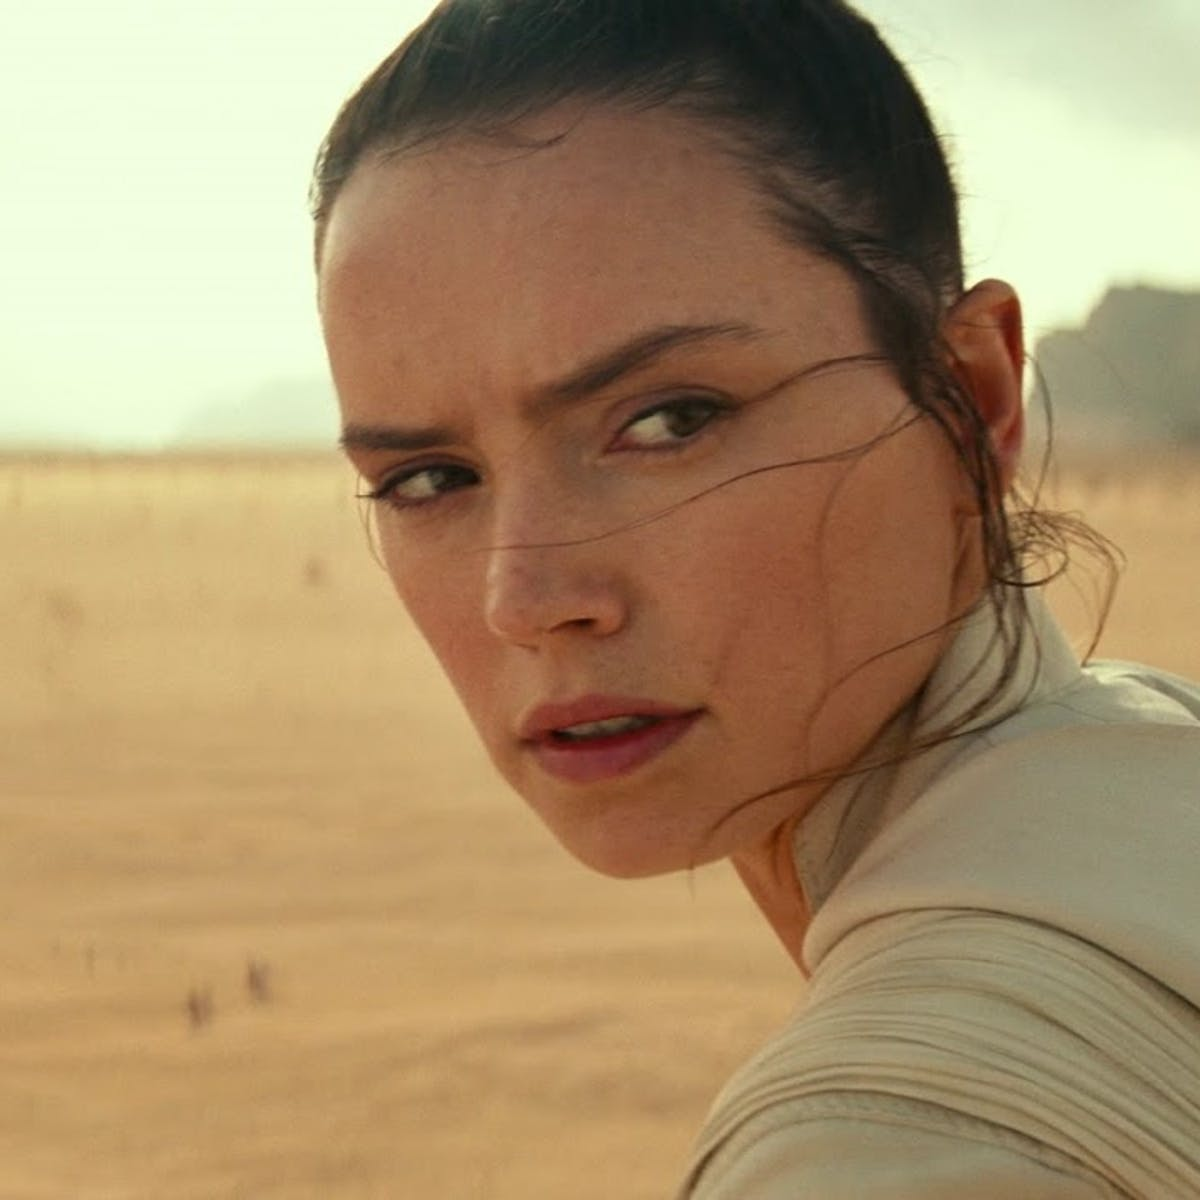 'Star Wars 9' spoilers: Rey's backstory won't change, hints Rian Johnson